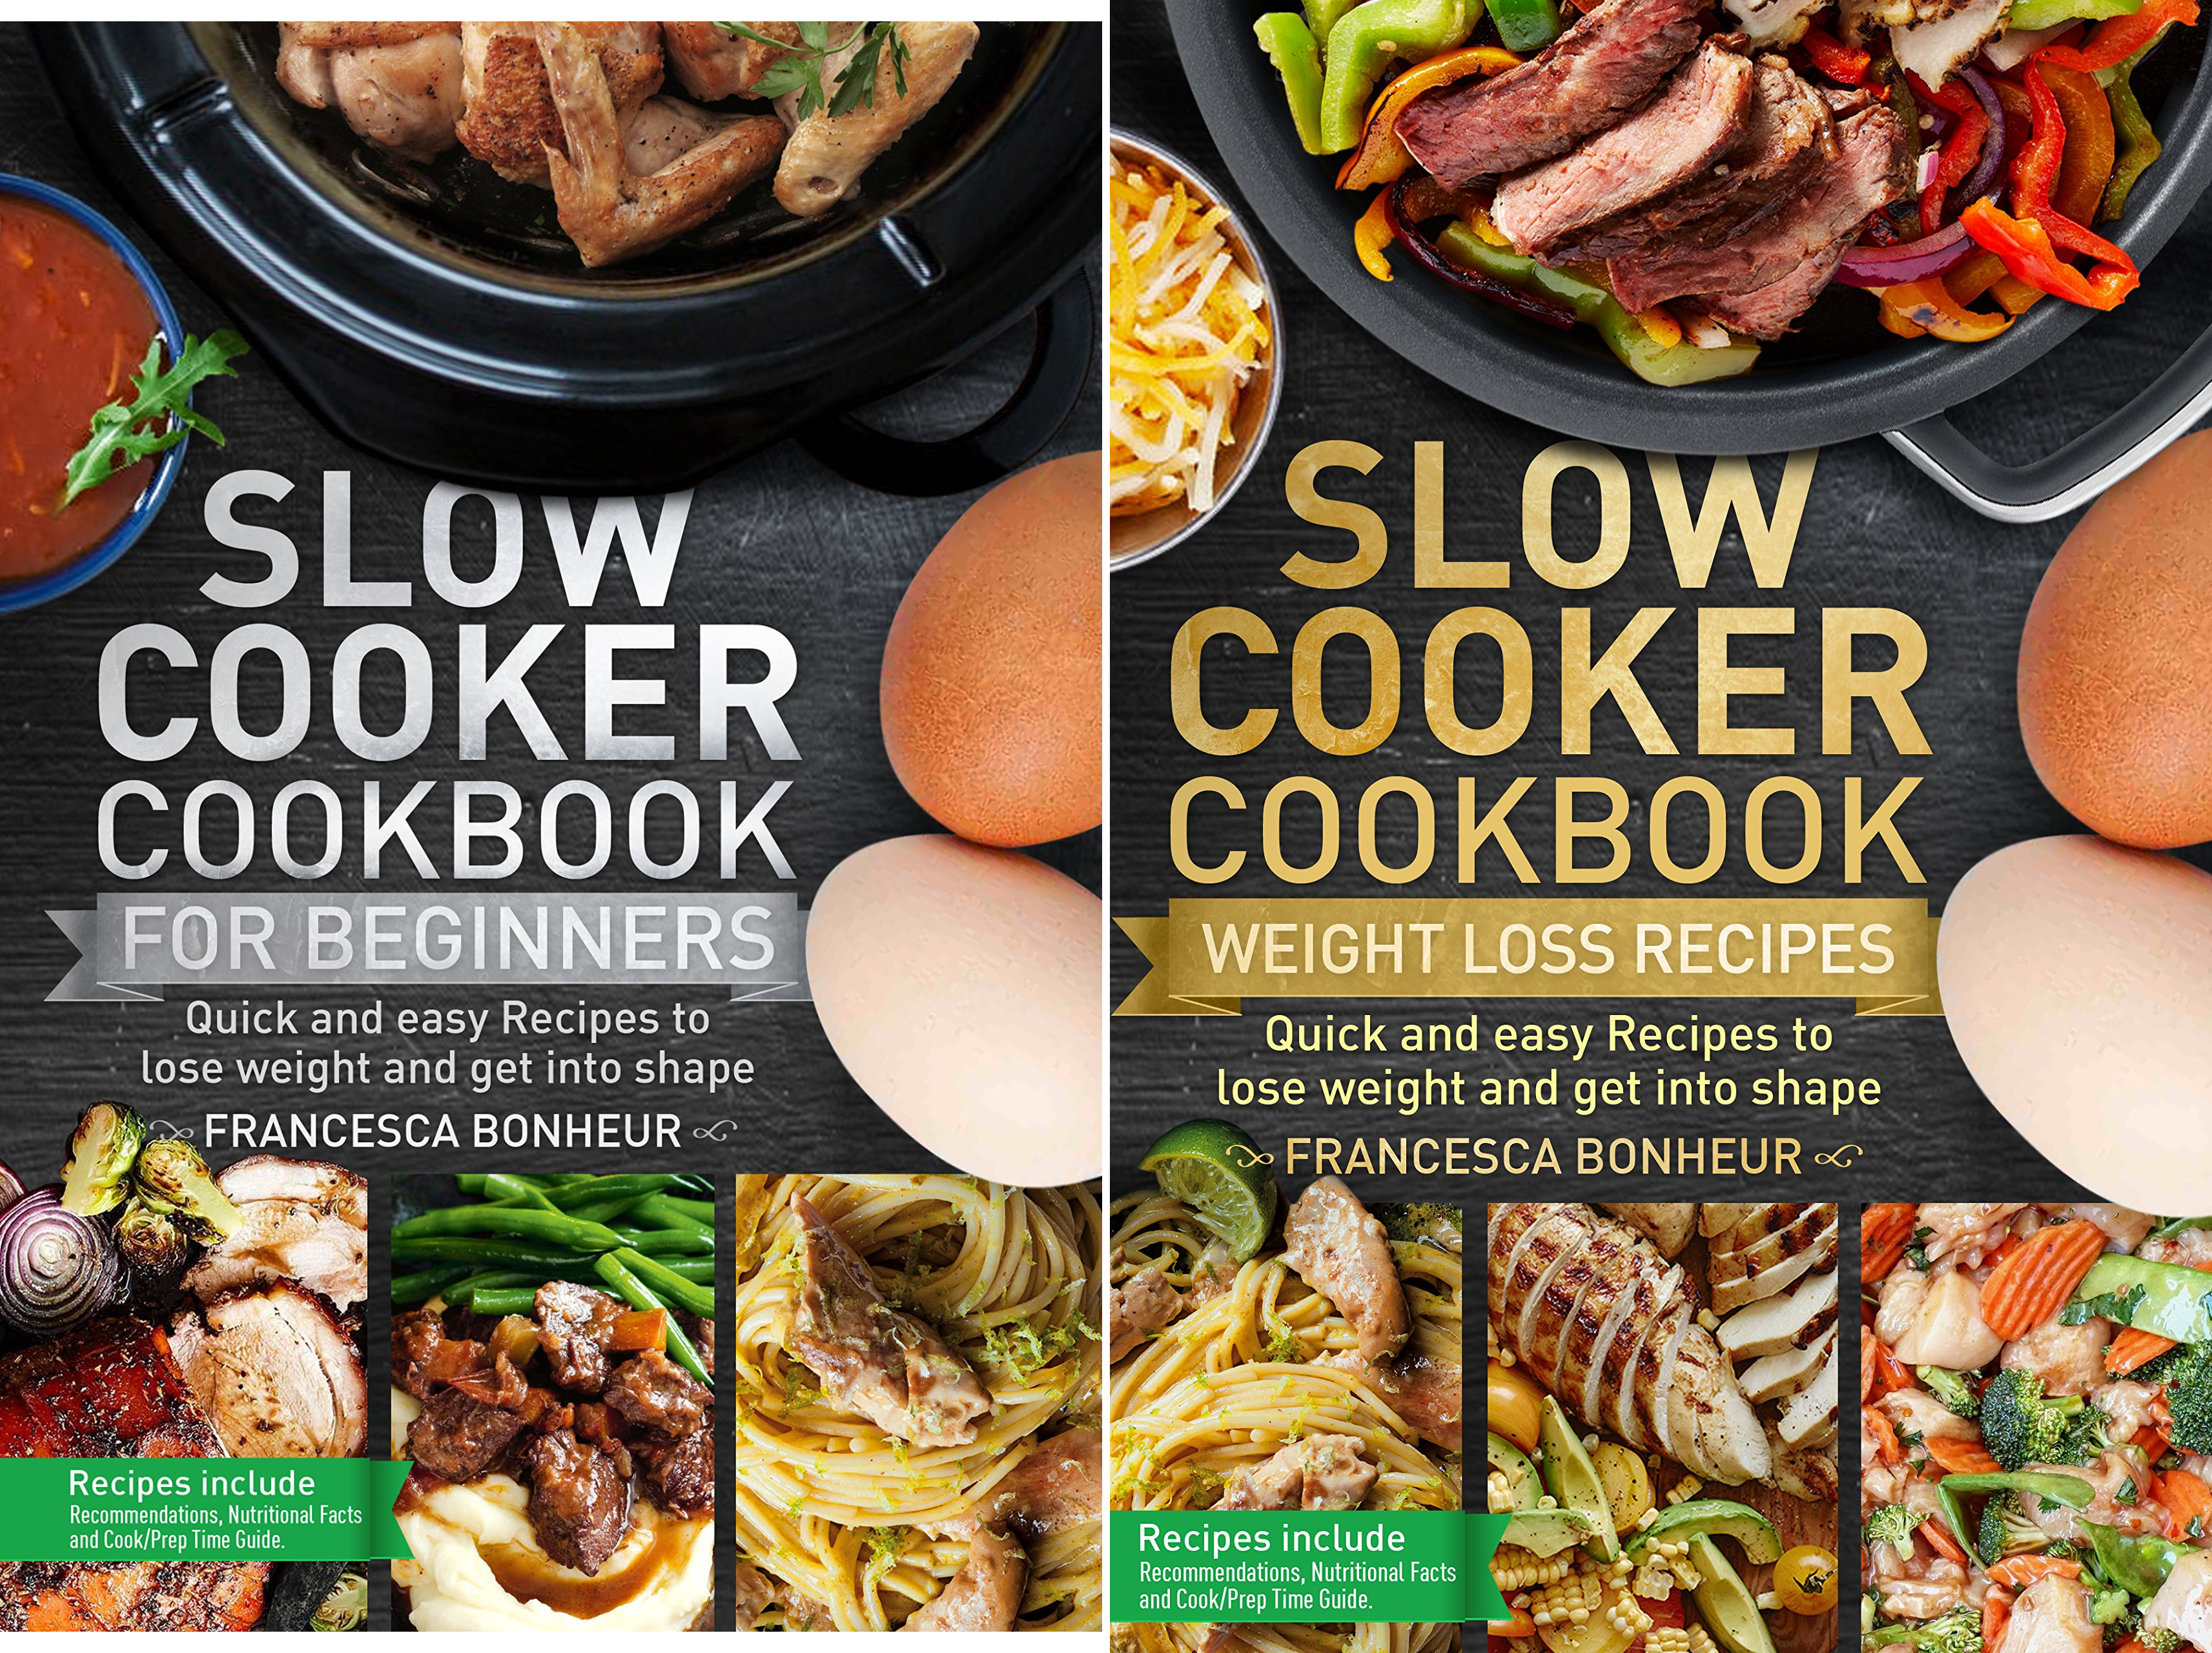 Easy, Healthy and Delicious Low Carb Slow Cooker Series (2 Book Series)